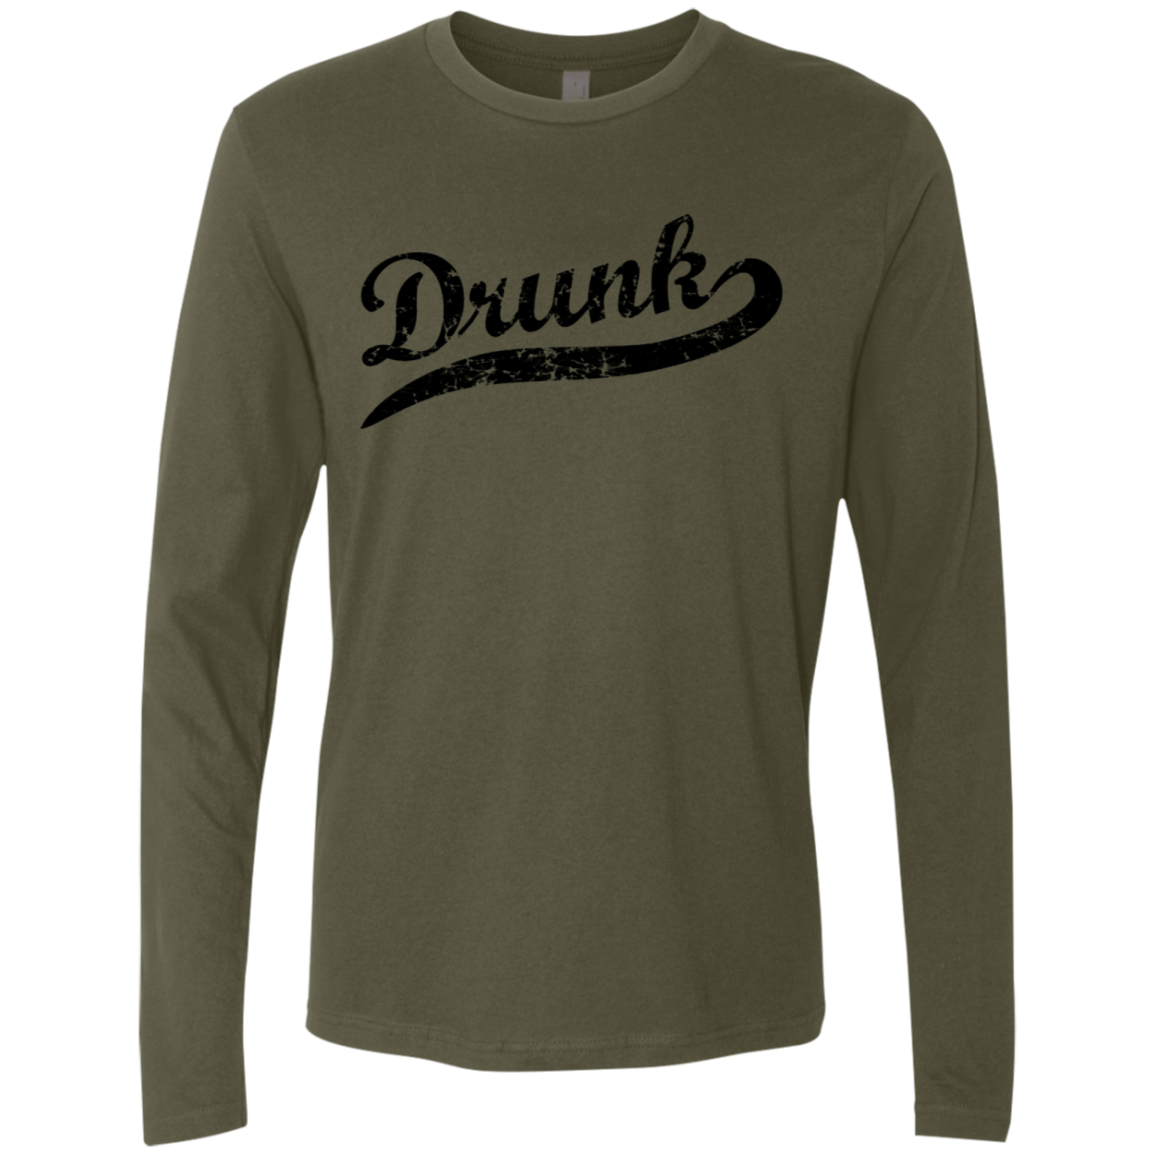 Drunk Men's Long Sleeve Tee